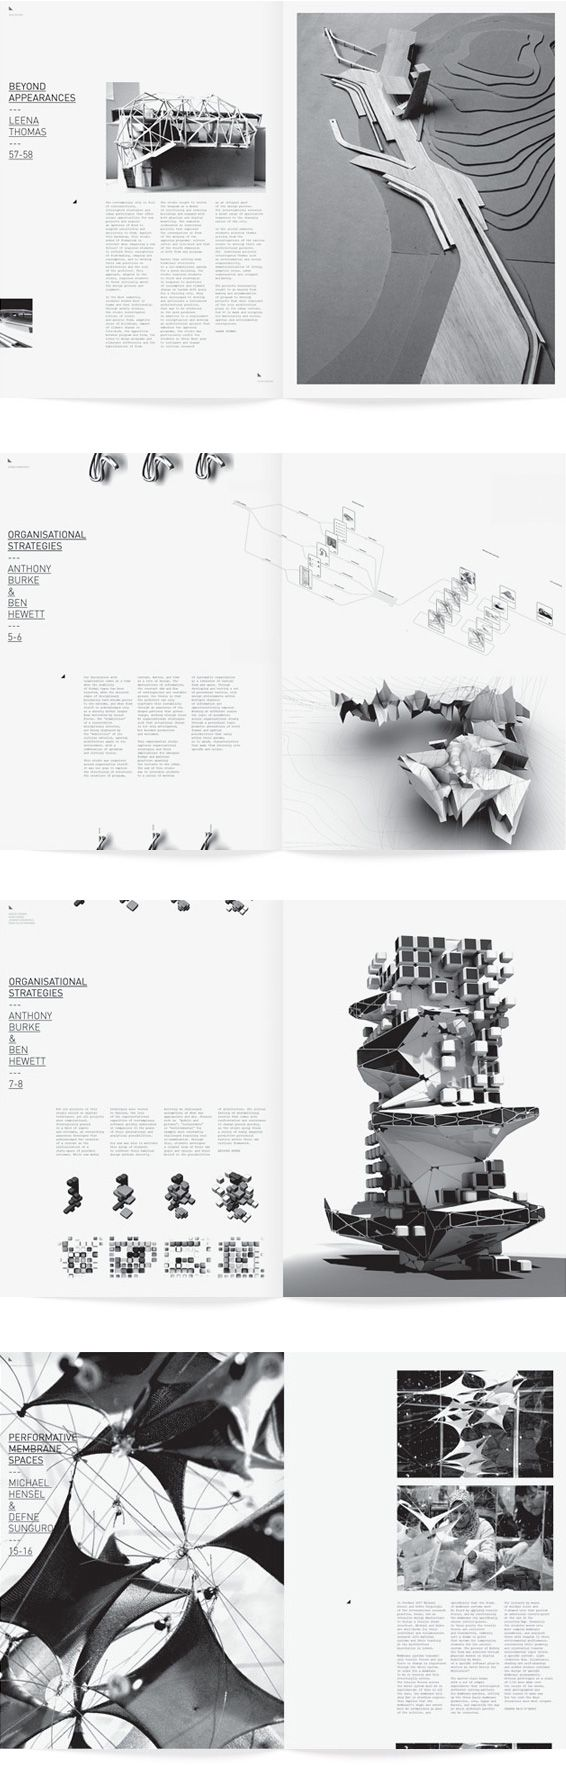 book pr u00e9sentation verticale  utilisation du noir et blanc uts school of architecture materials